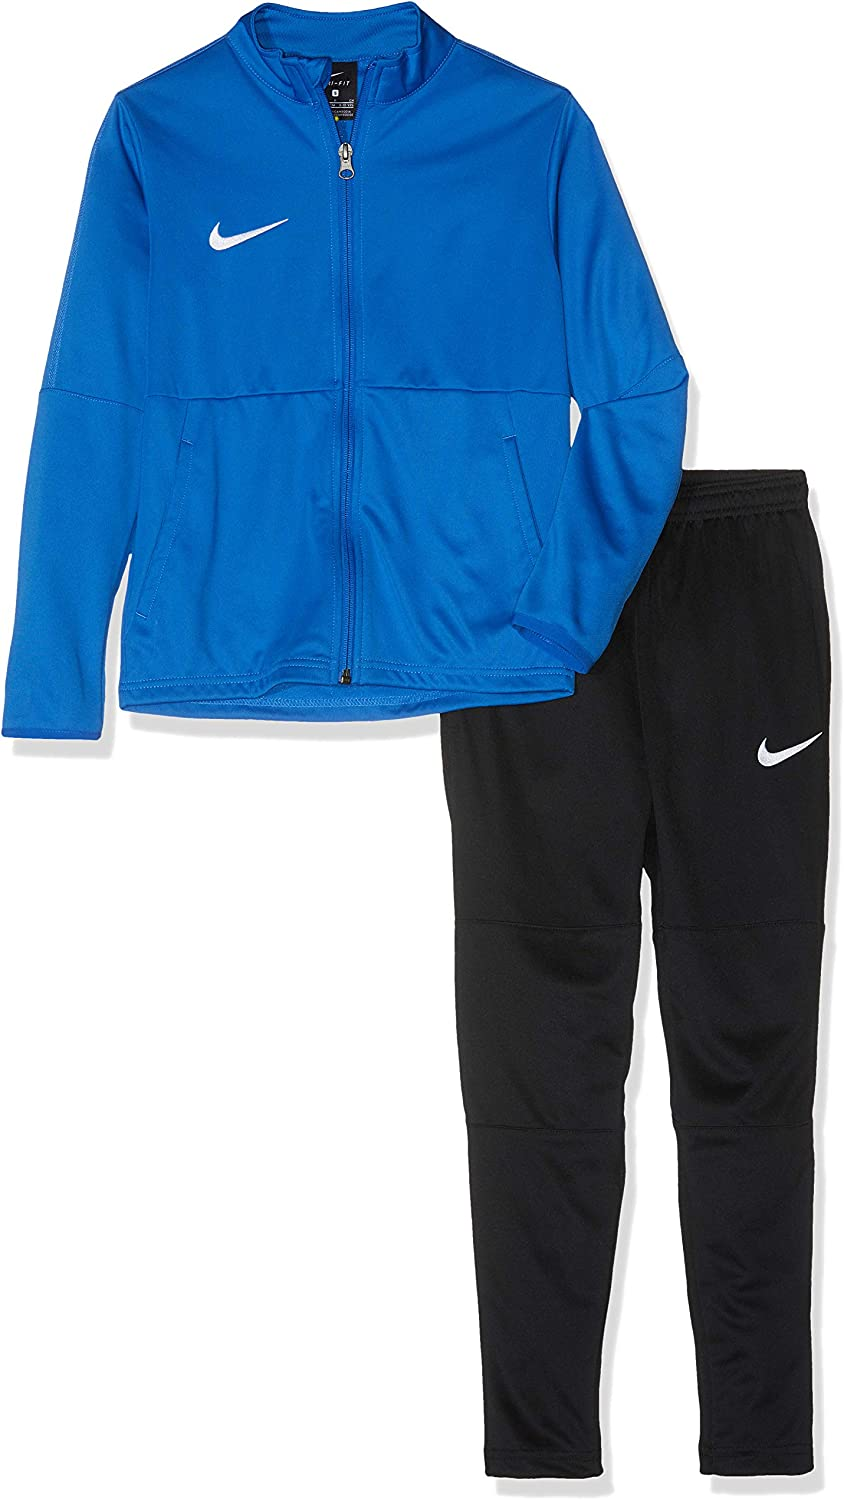 Nike Childrens Dry Park 18 Track Suit